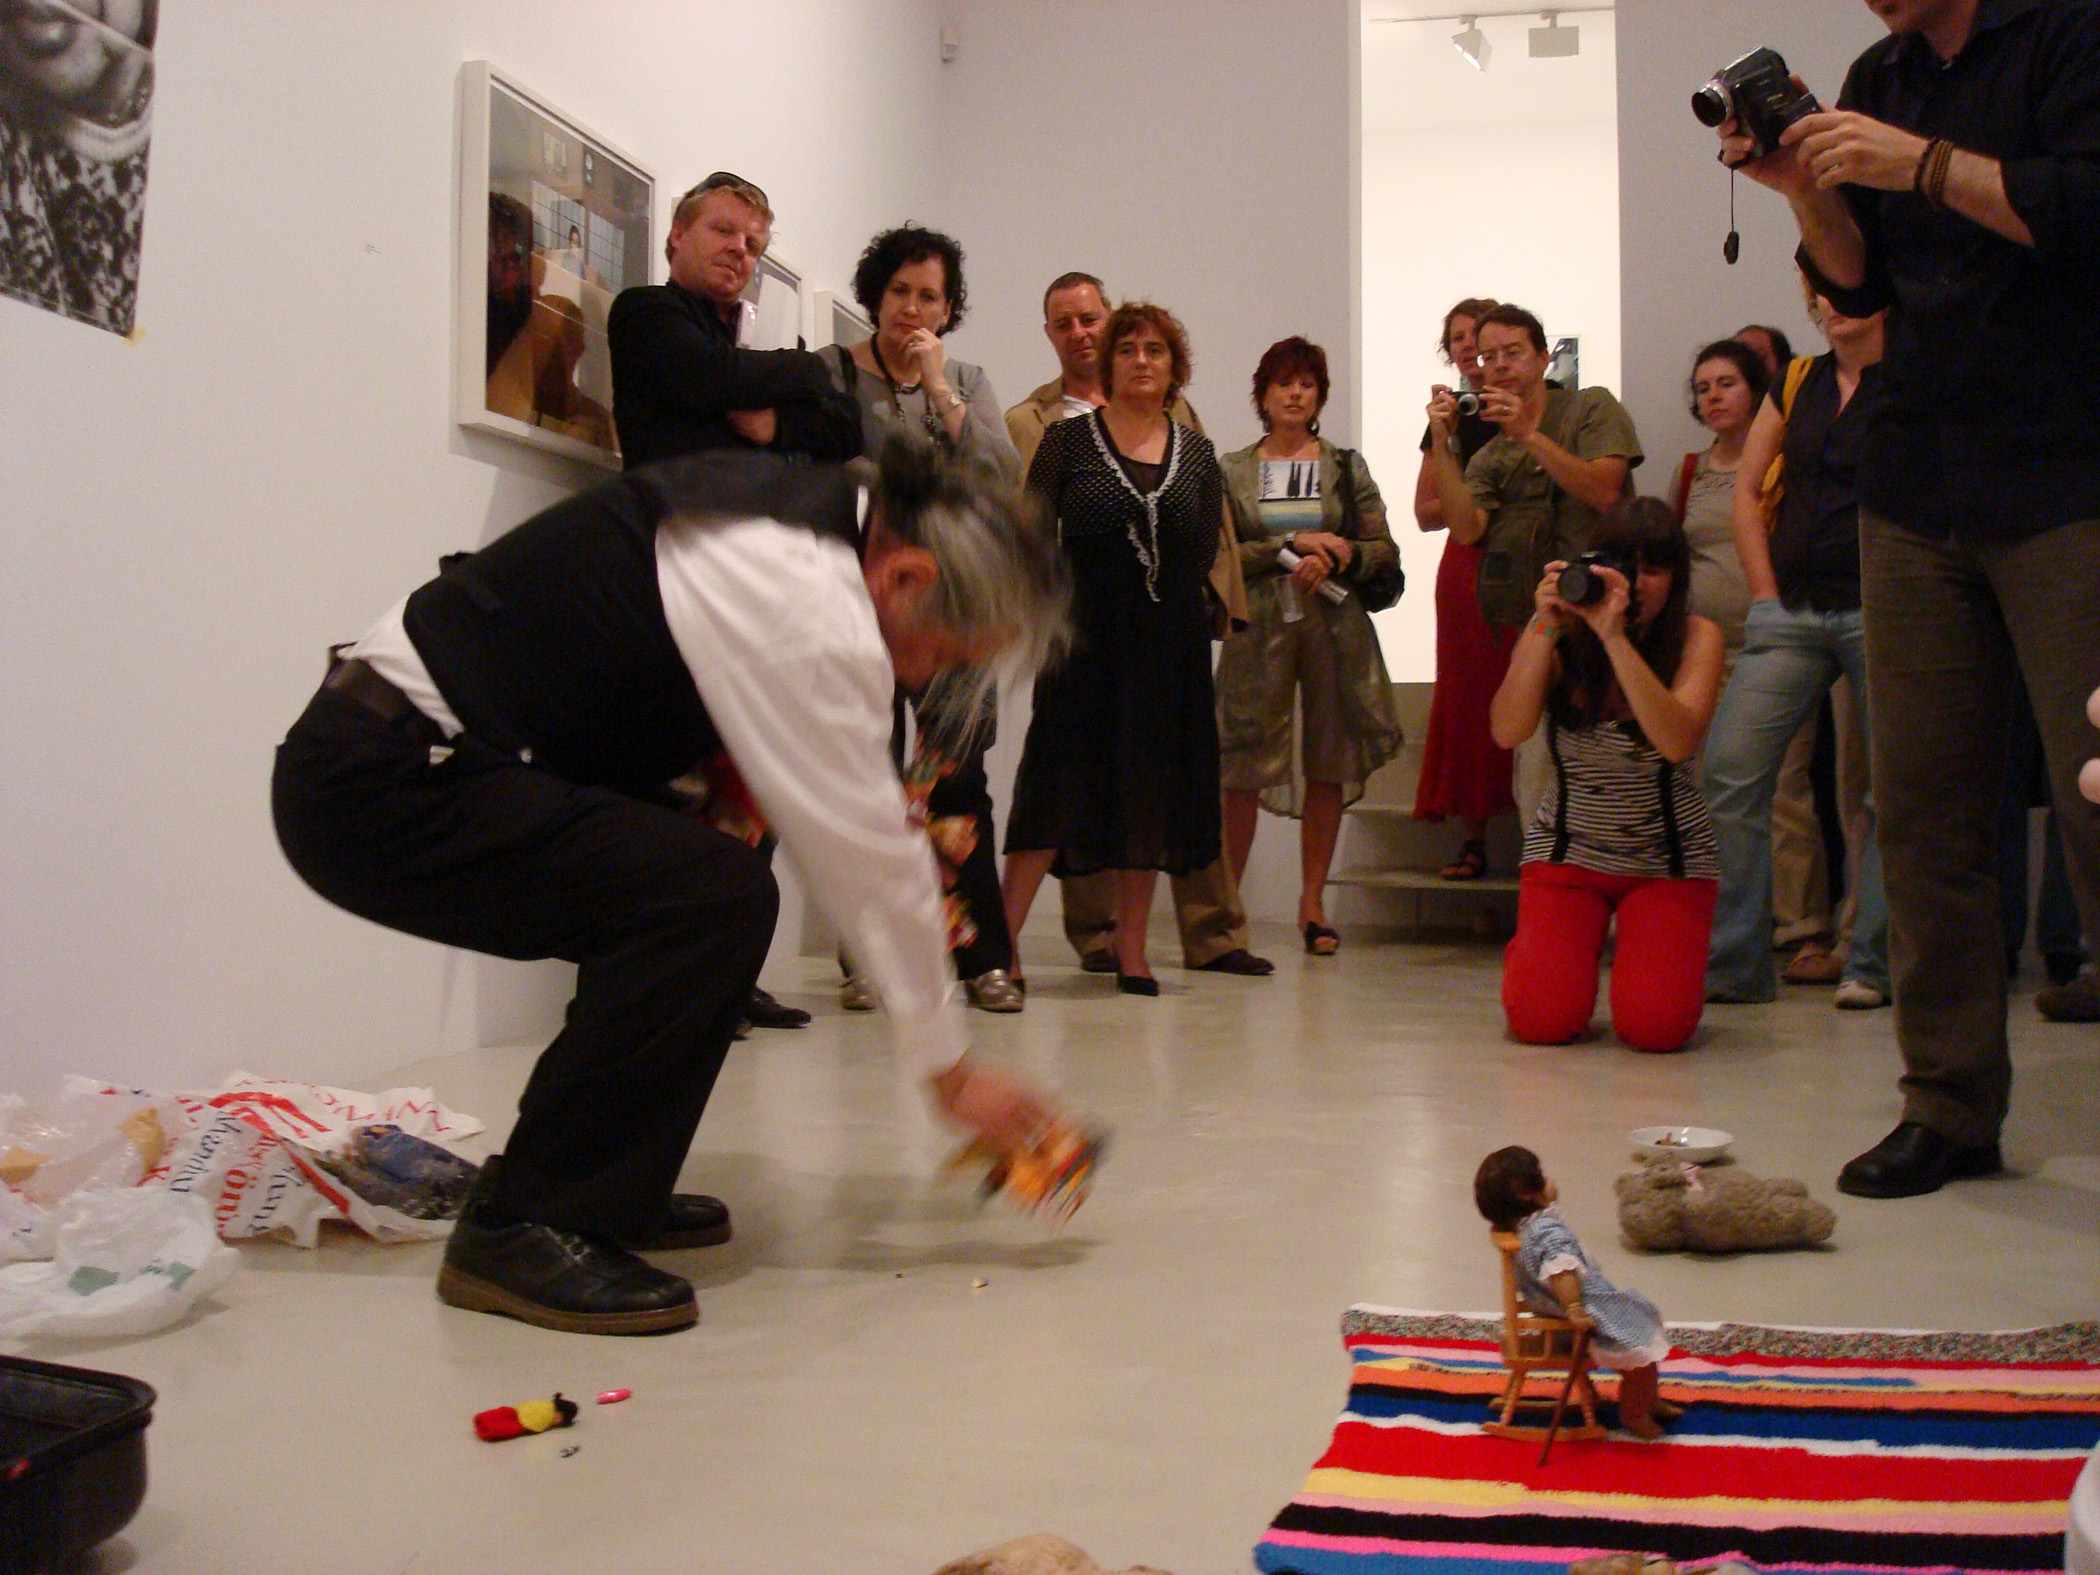 Performance view from Tatsumi Orimoto, 2008